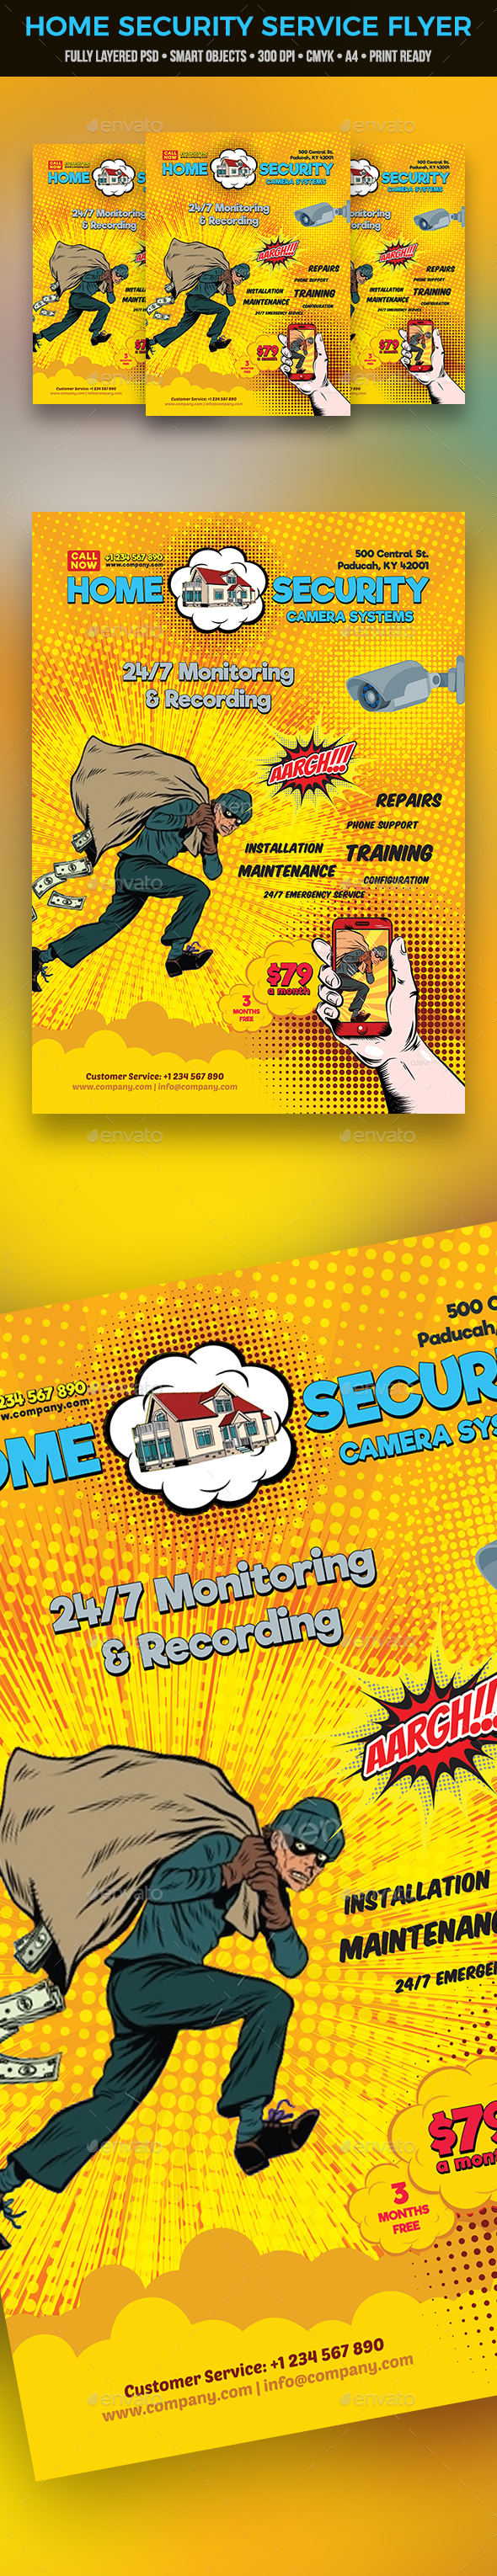 Home Security Service Flyer - Commerce Flyers